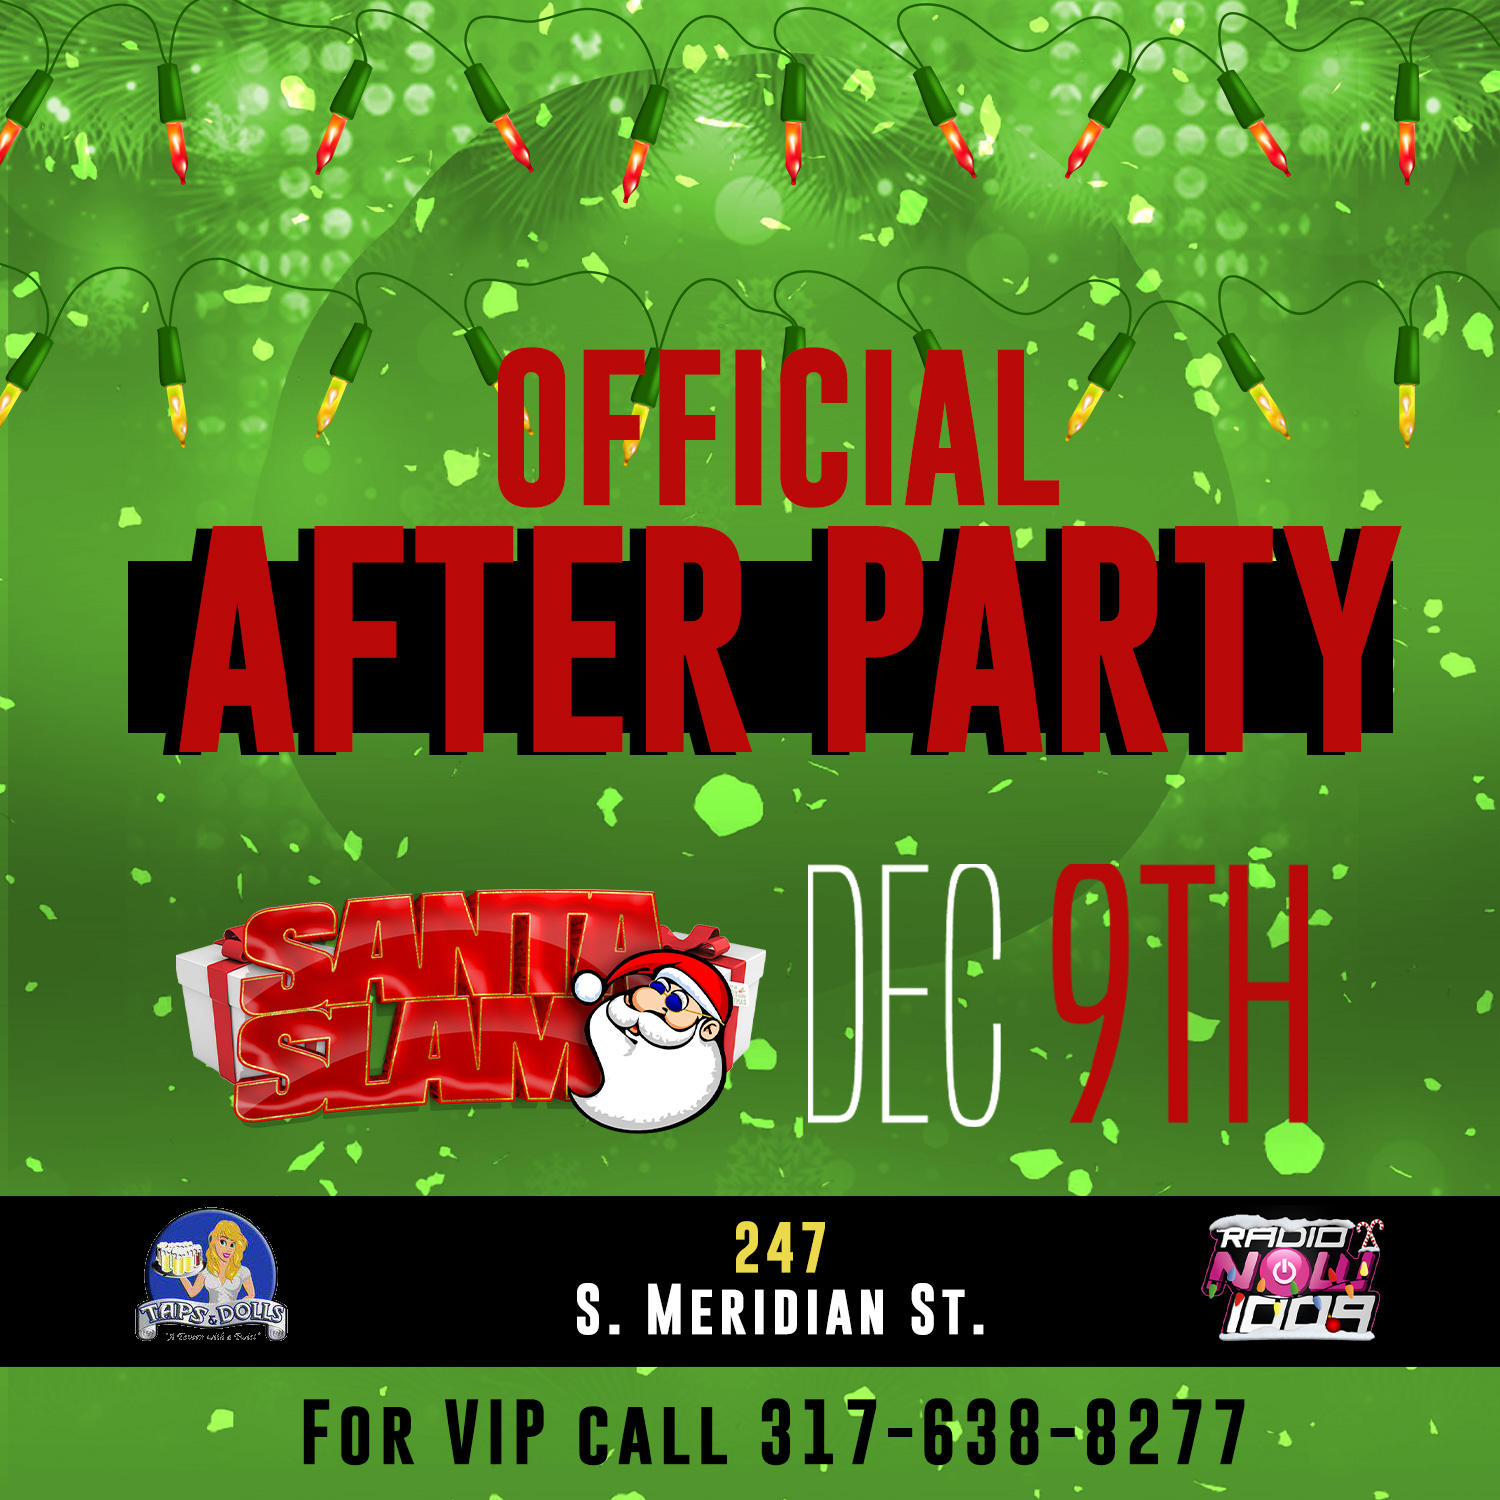 The 2018 OFFICIAL Santa Slam After Party Flyer